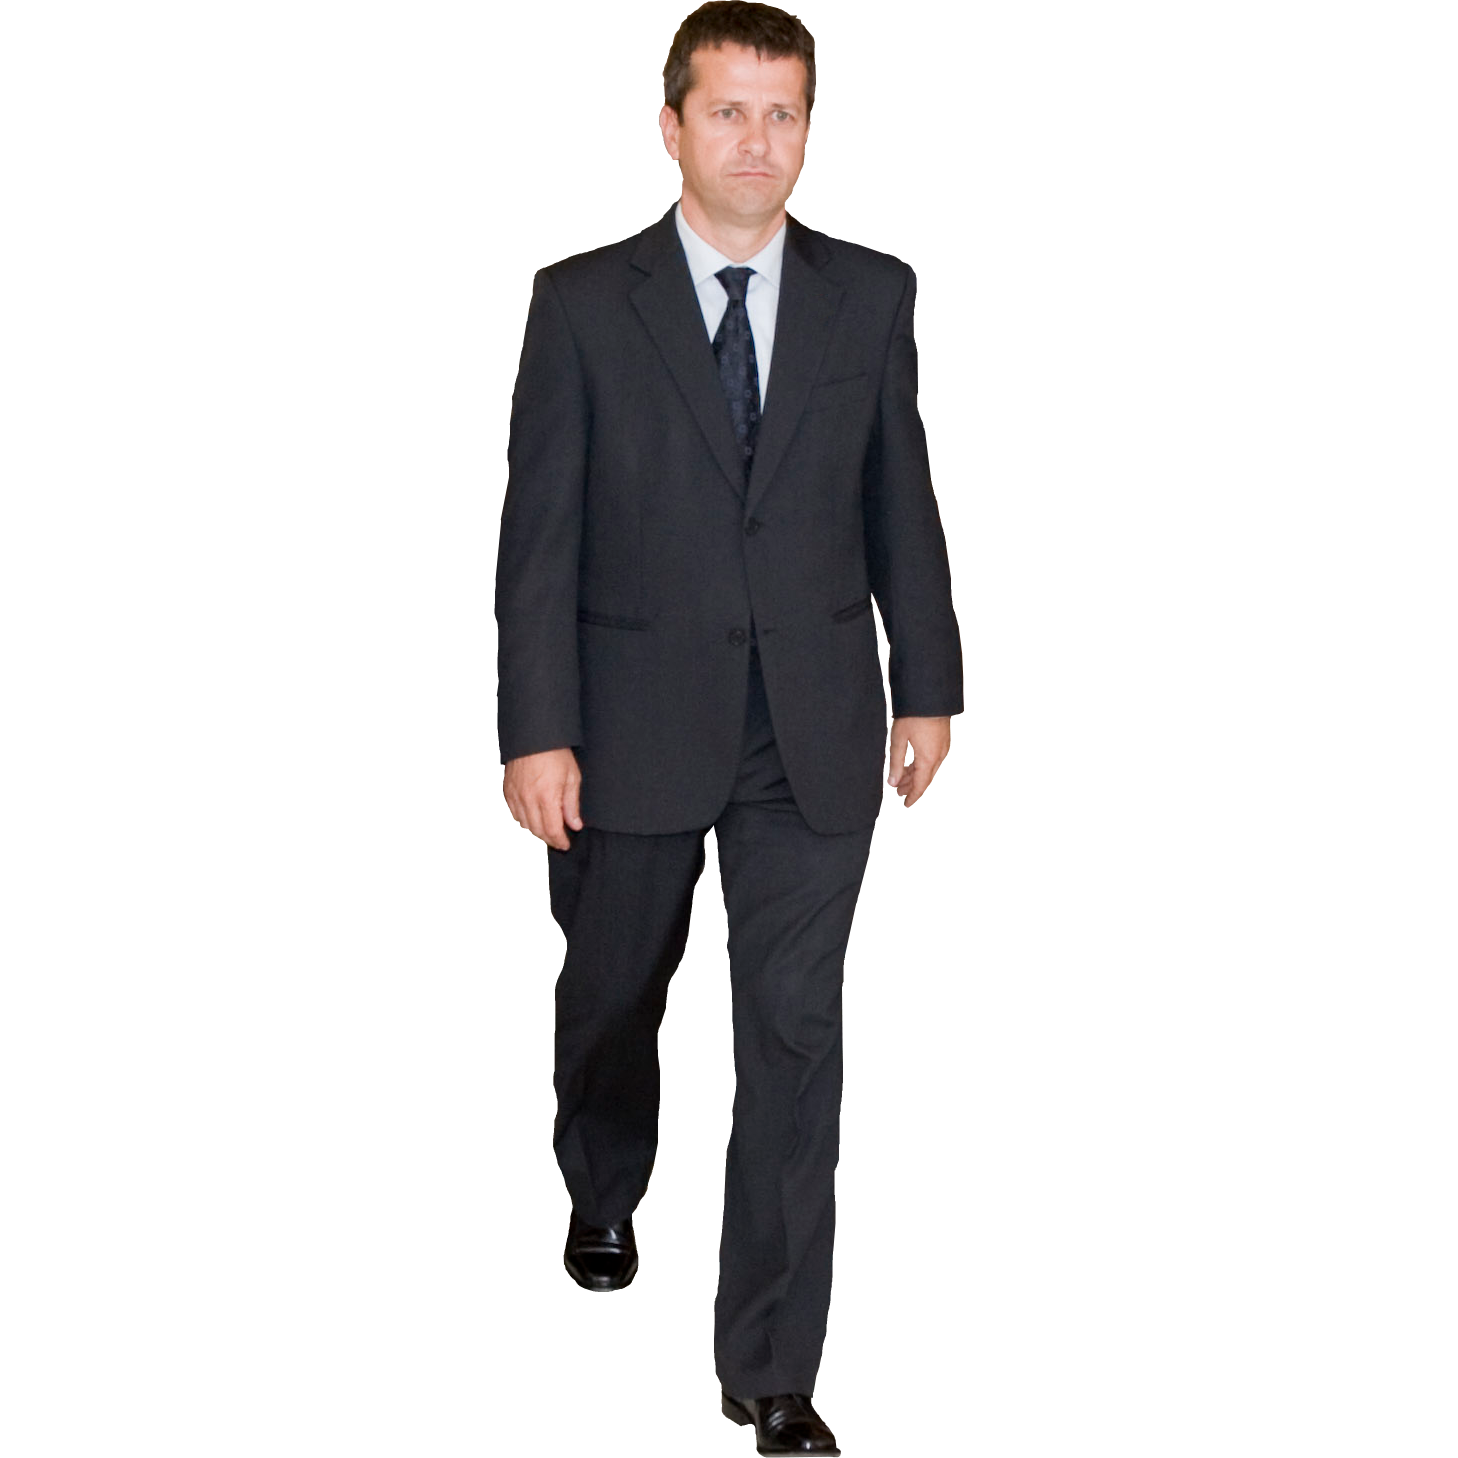 Suit PNG Transparent Image - Guy In A Suit PNG